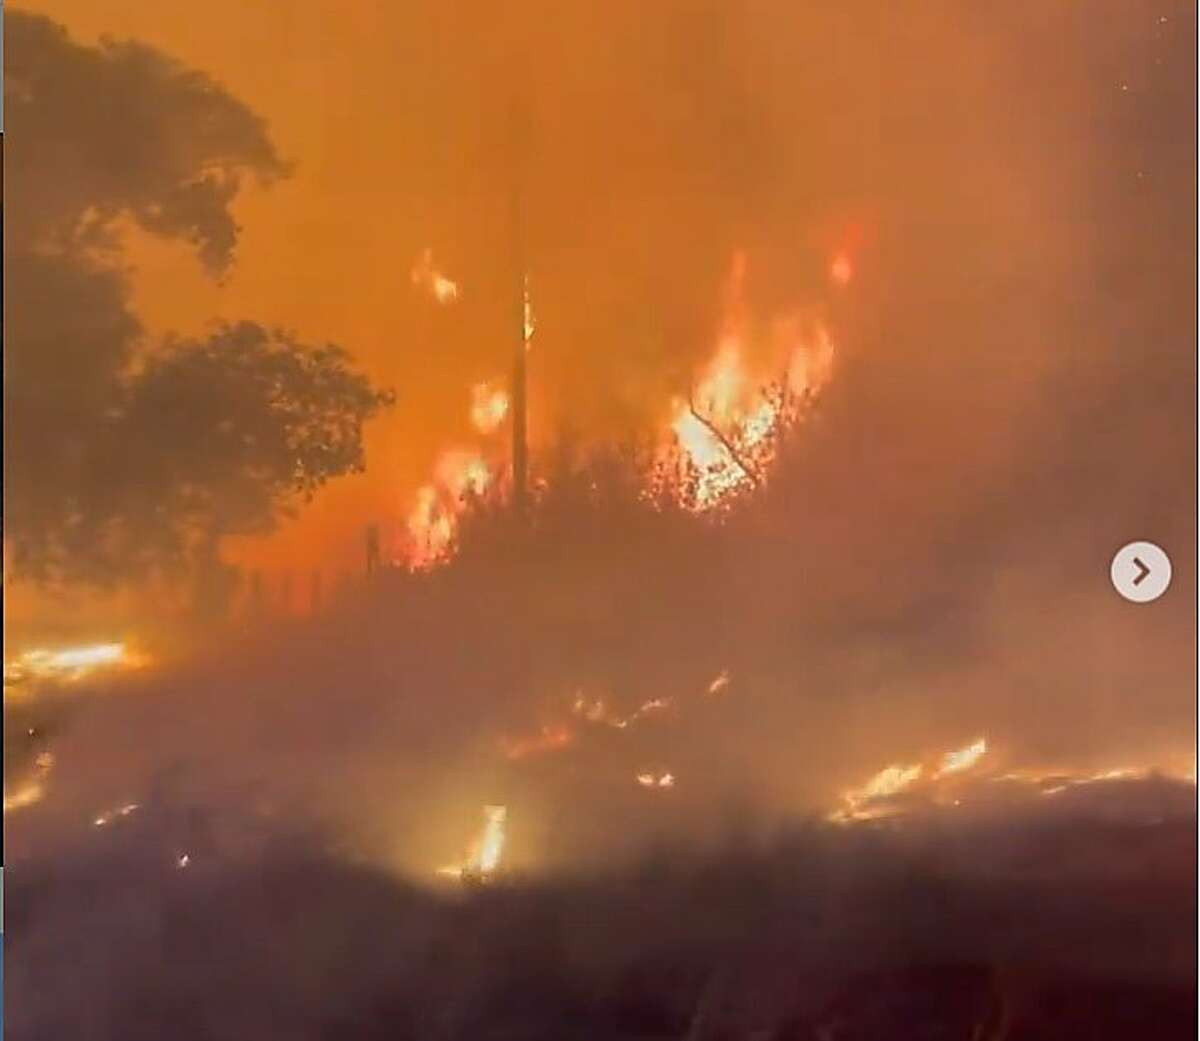 Almost 90 firefighters battled a 3:30 a.m. brush fire near the Antioch Marina at 1 Marina Plaza on Thursday, May 6, 2021. This is a screenshot from a video recorded by the Contra Costa County Fire Protection District.